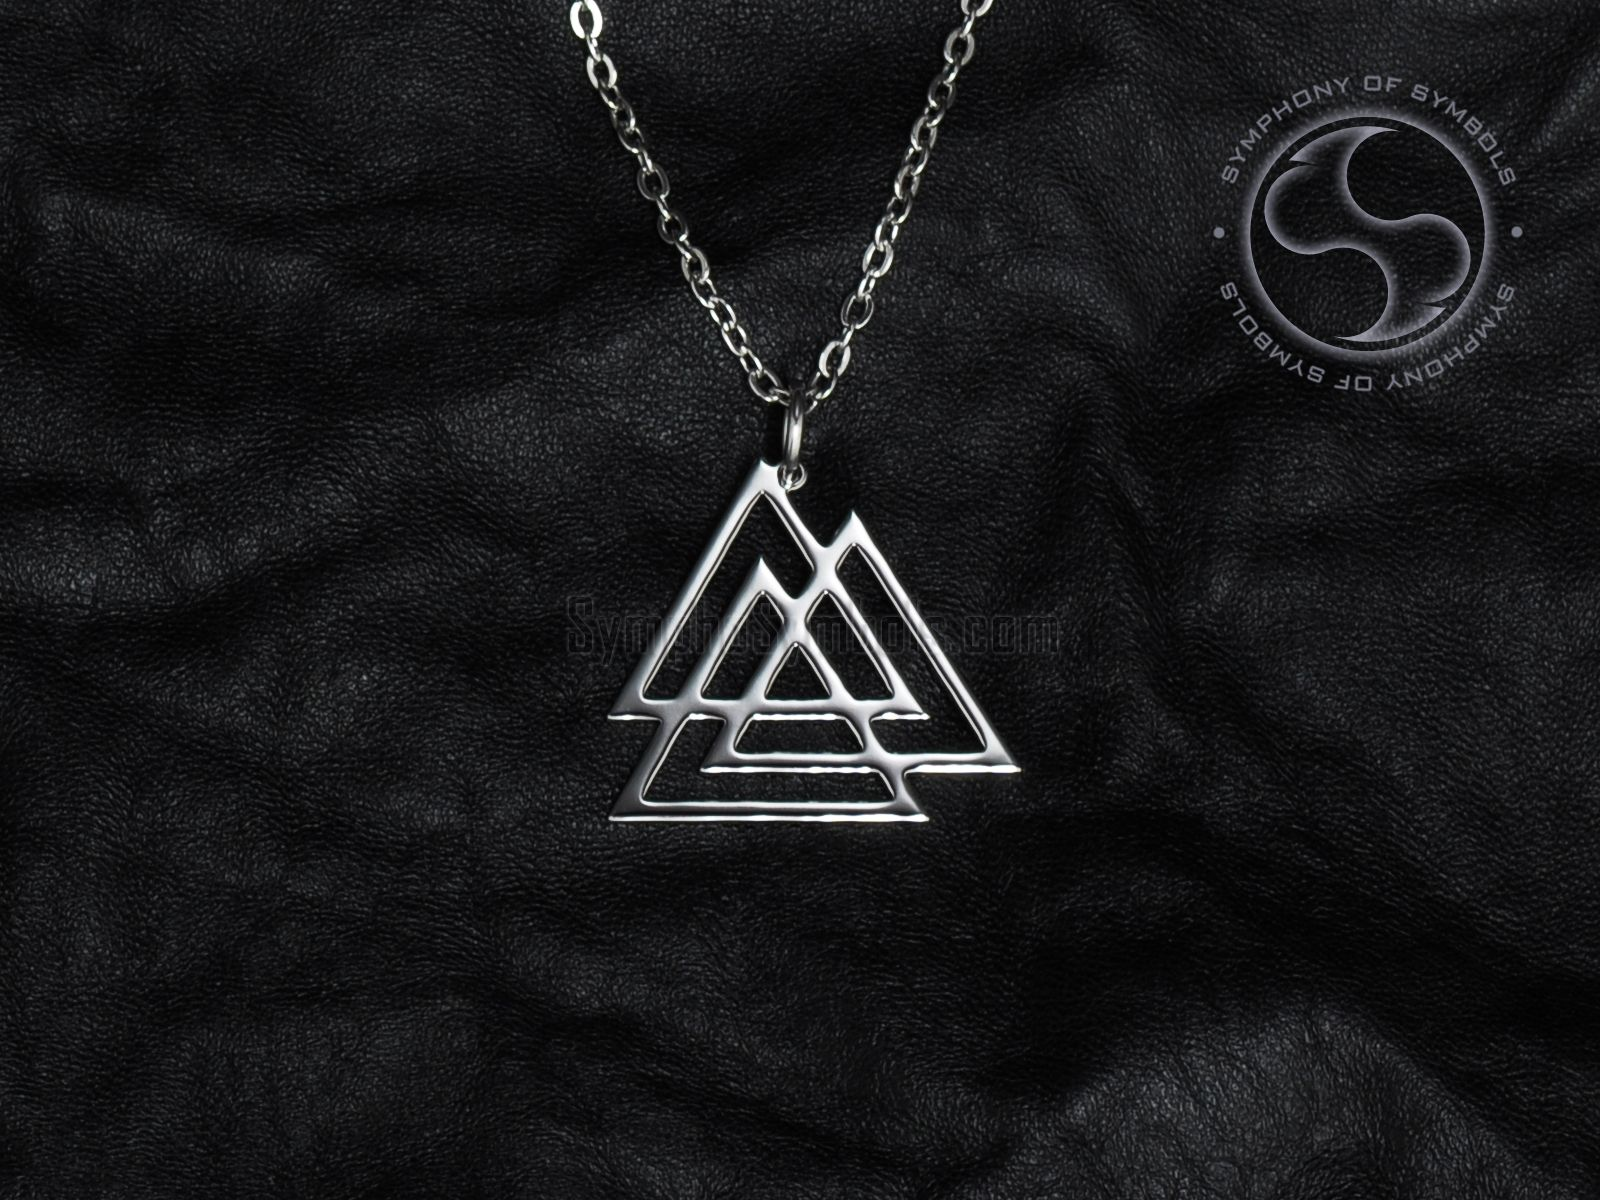 Valknut Symbol Necklace Stainless steel jewelry, Steel